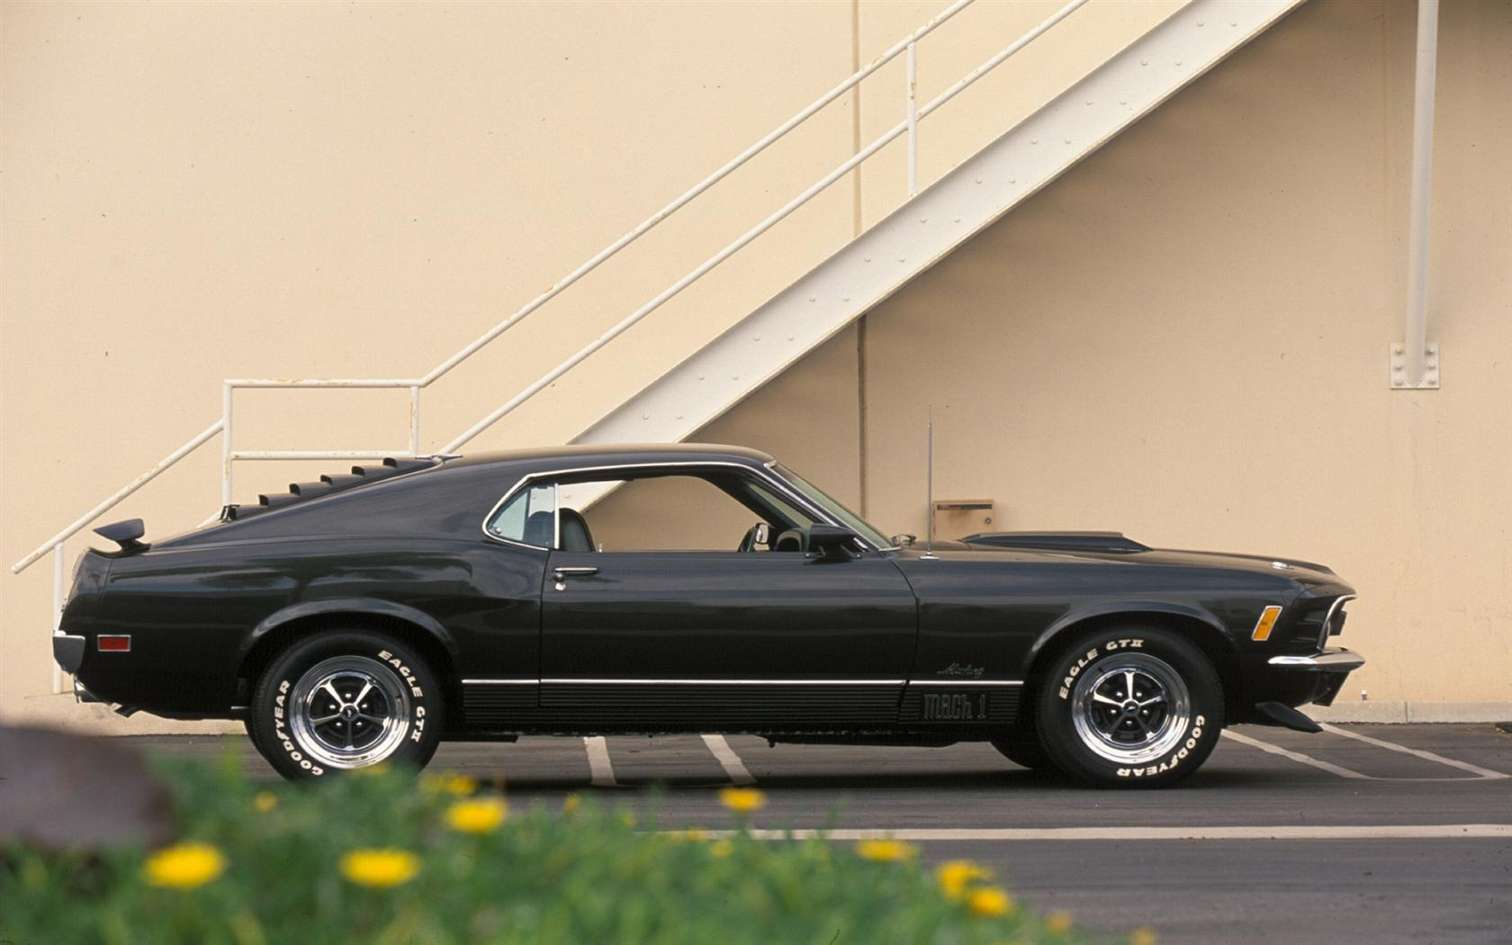 Ford Mustang Mach 1 #7022433